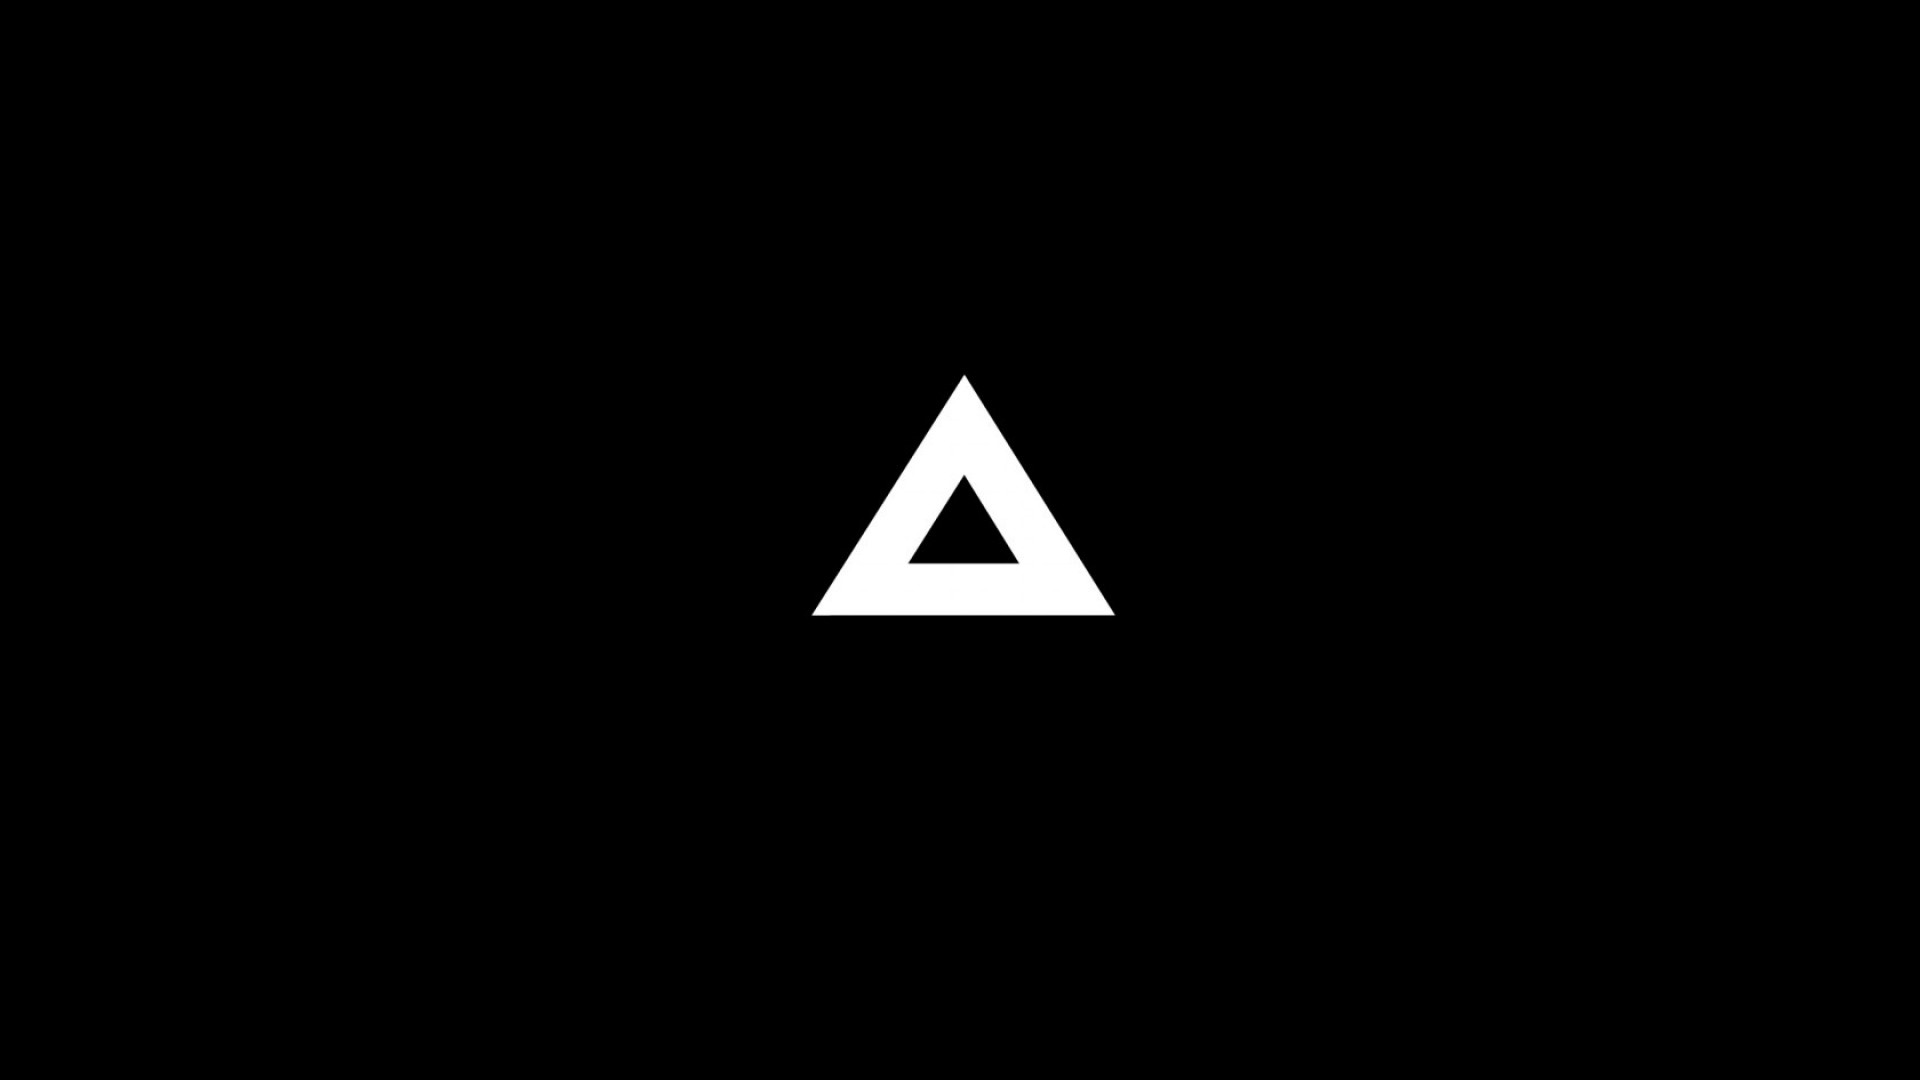 Wallpaper triangle, minimalism, black, white